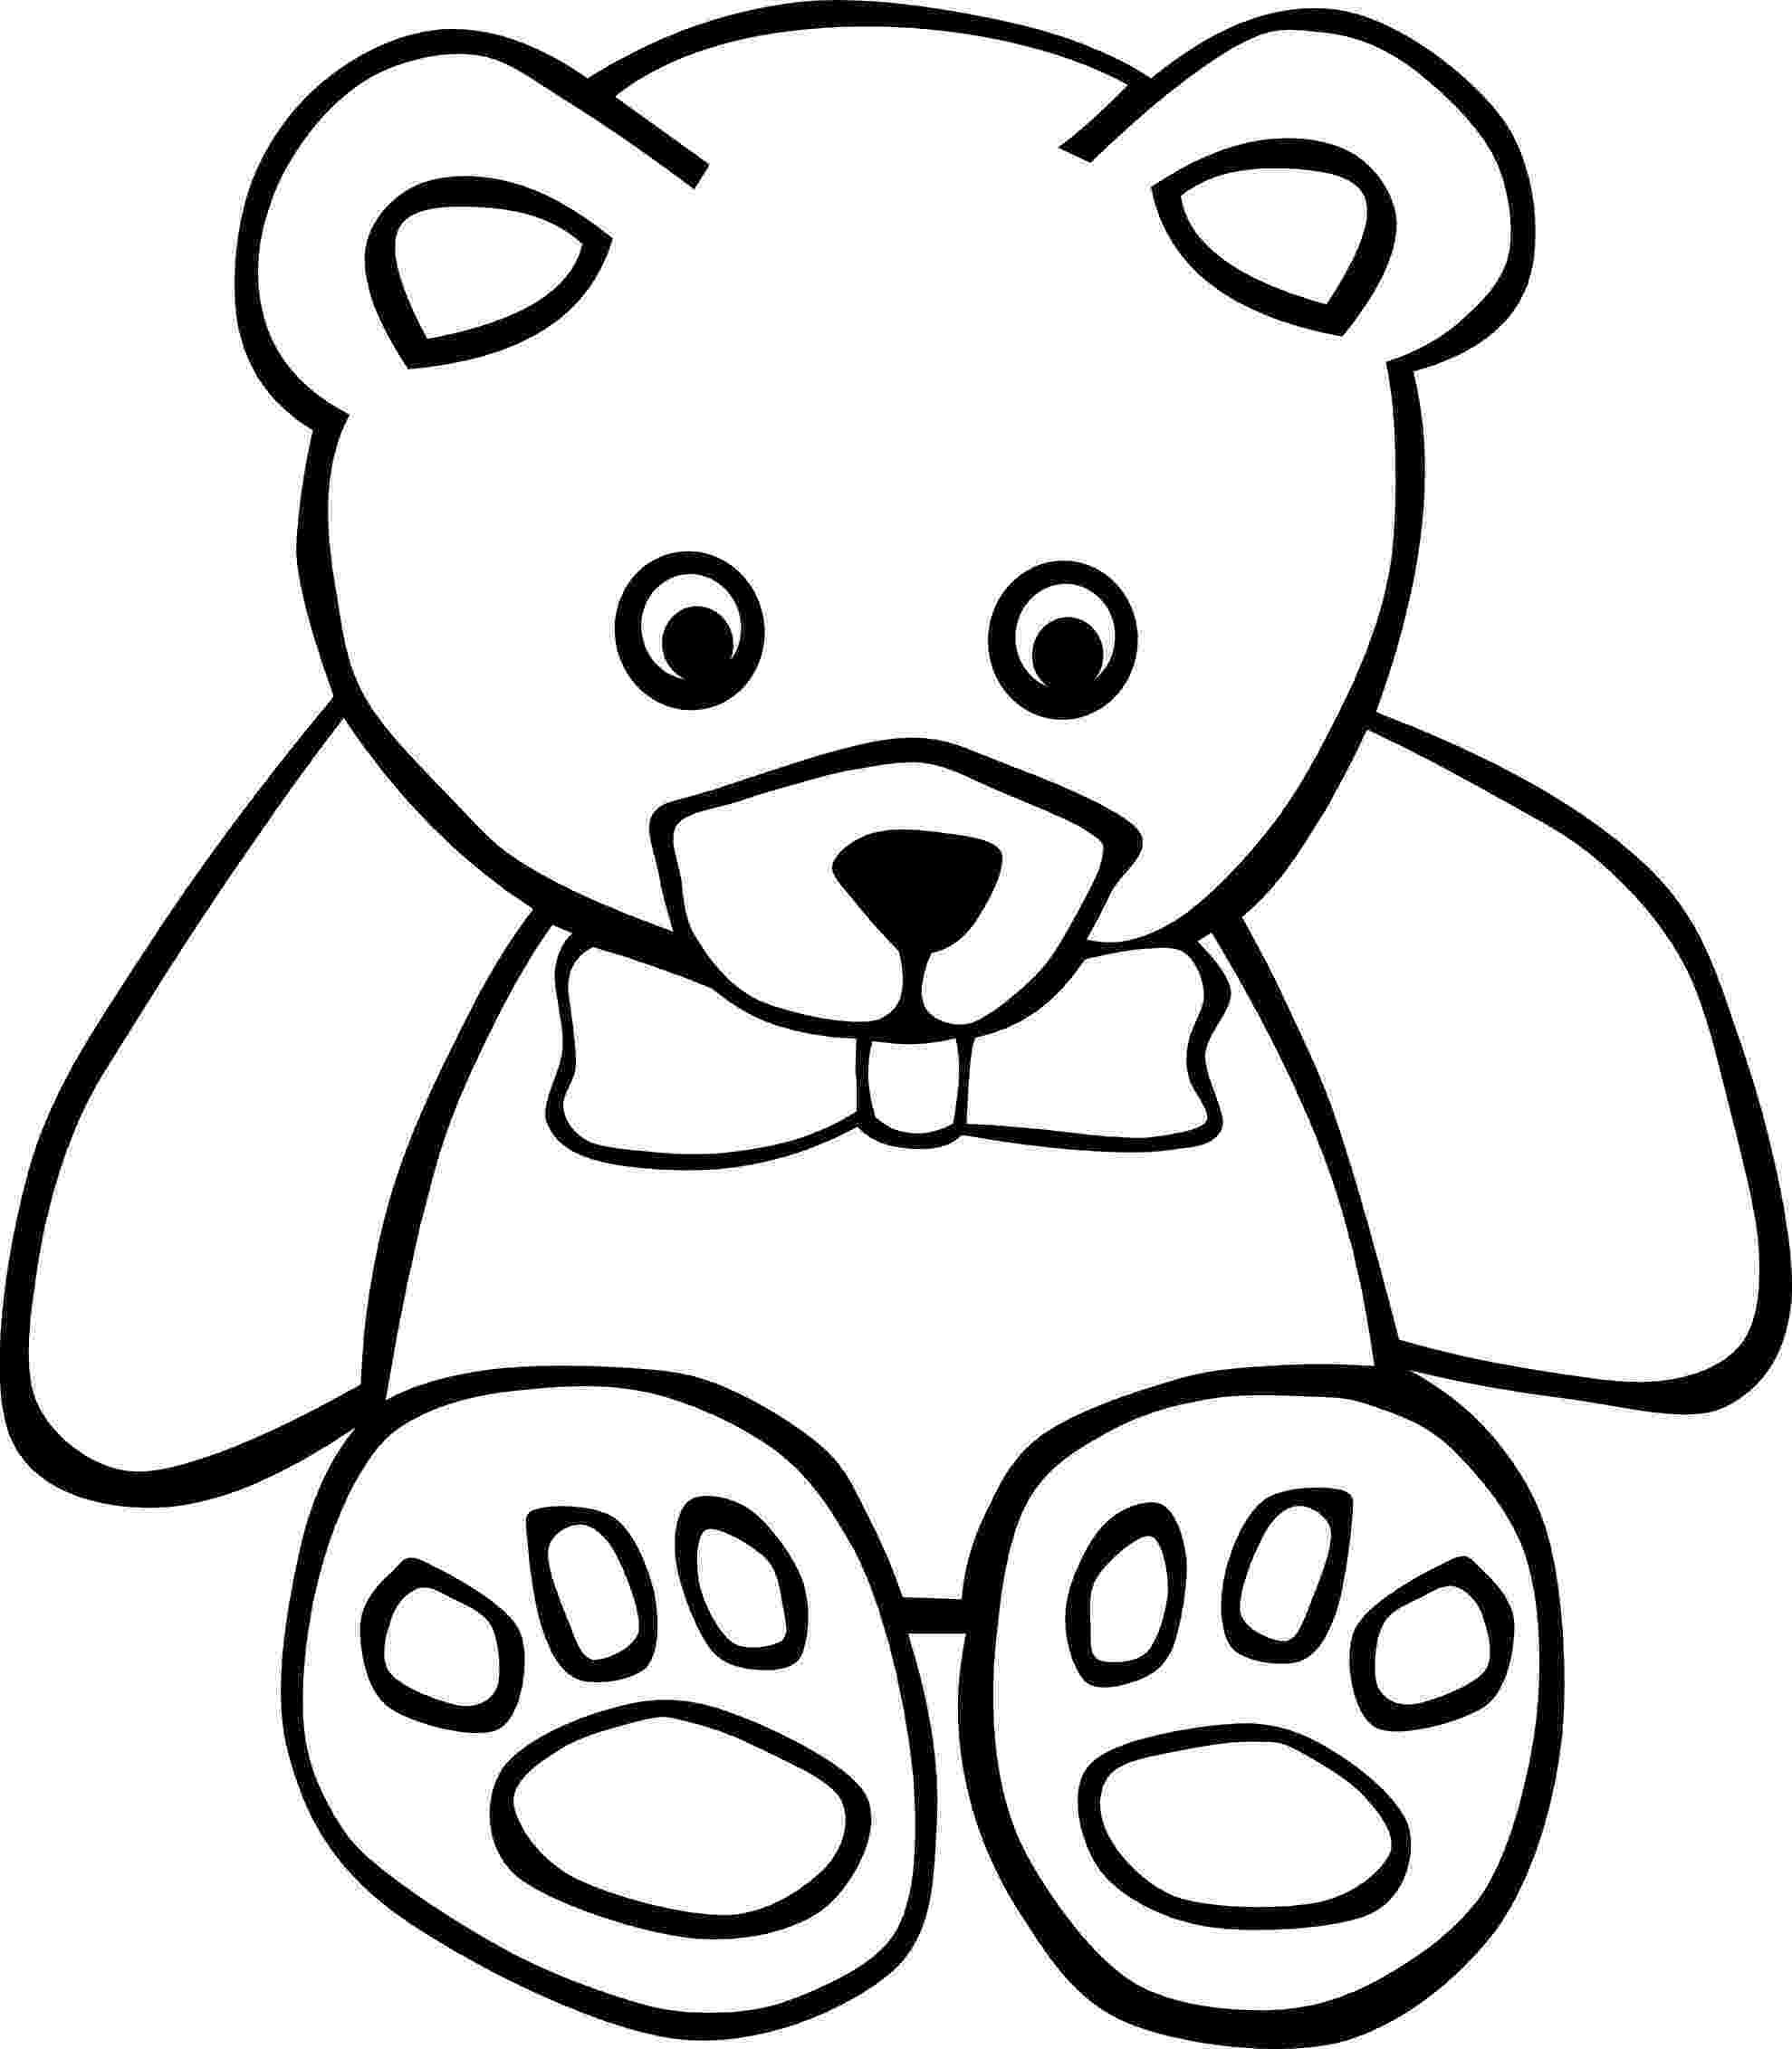 coloring page bear free printable teddy bear coloring pages for kids bear coloring page